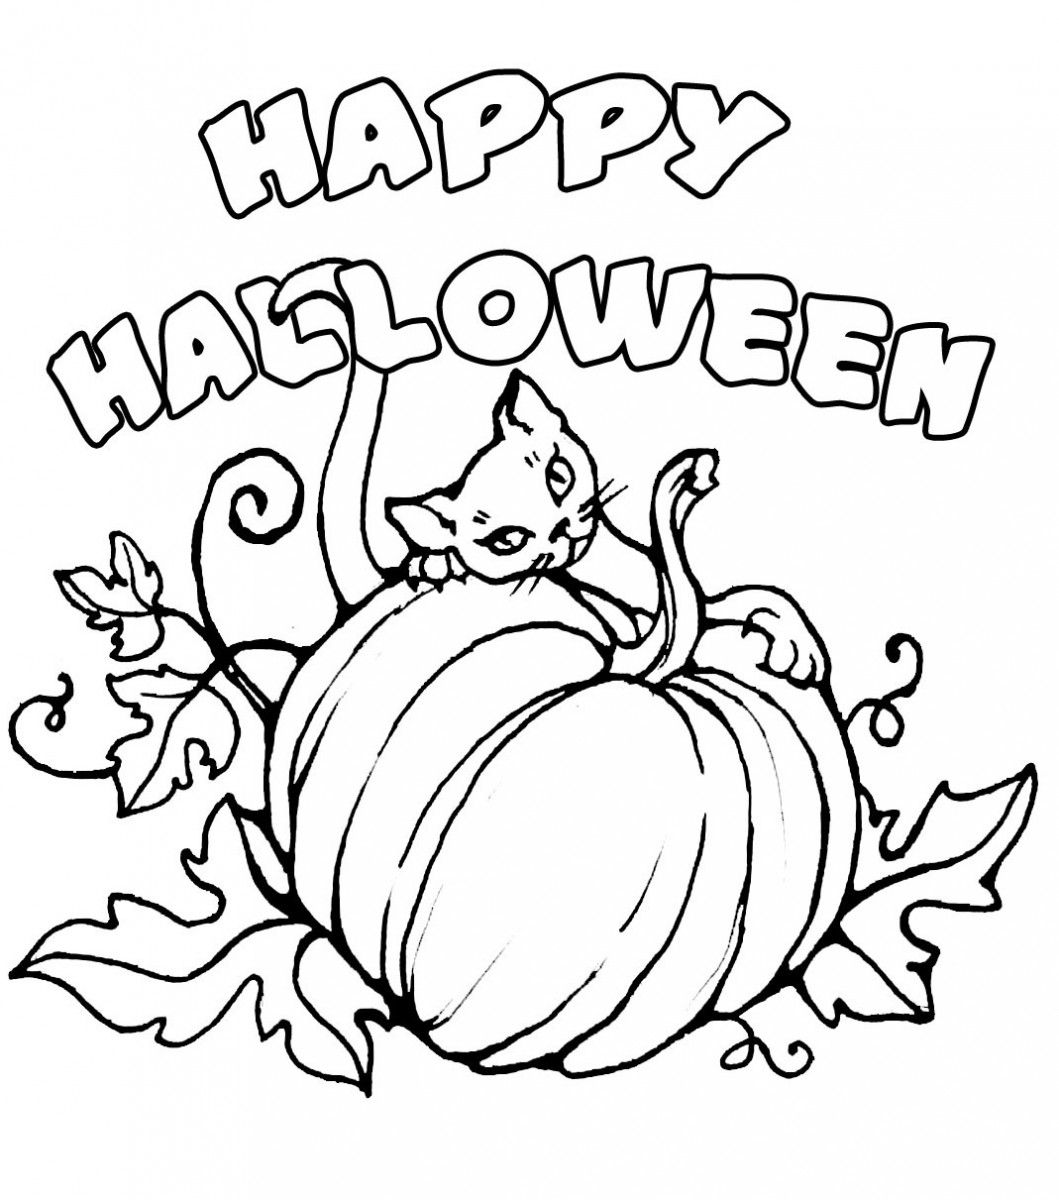 Funny Halloween Coloring Pages 5 Pumpkin coloring pages